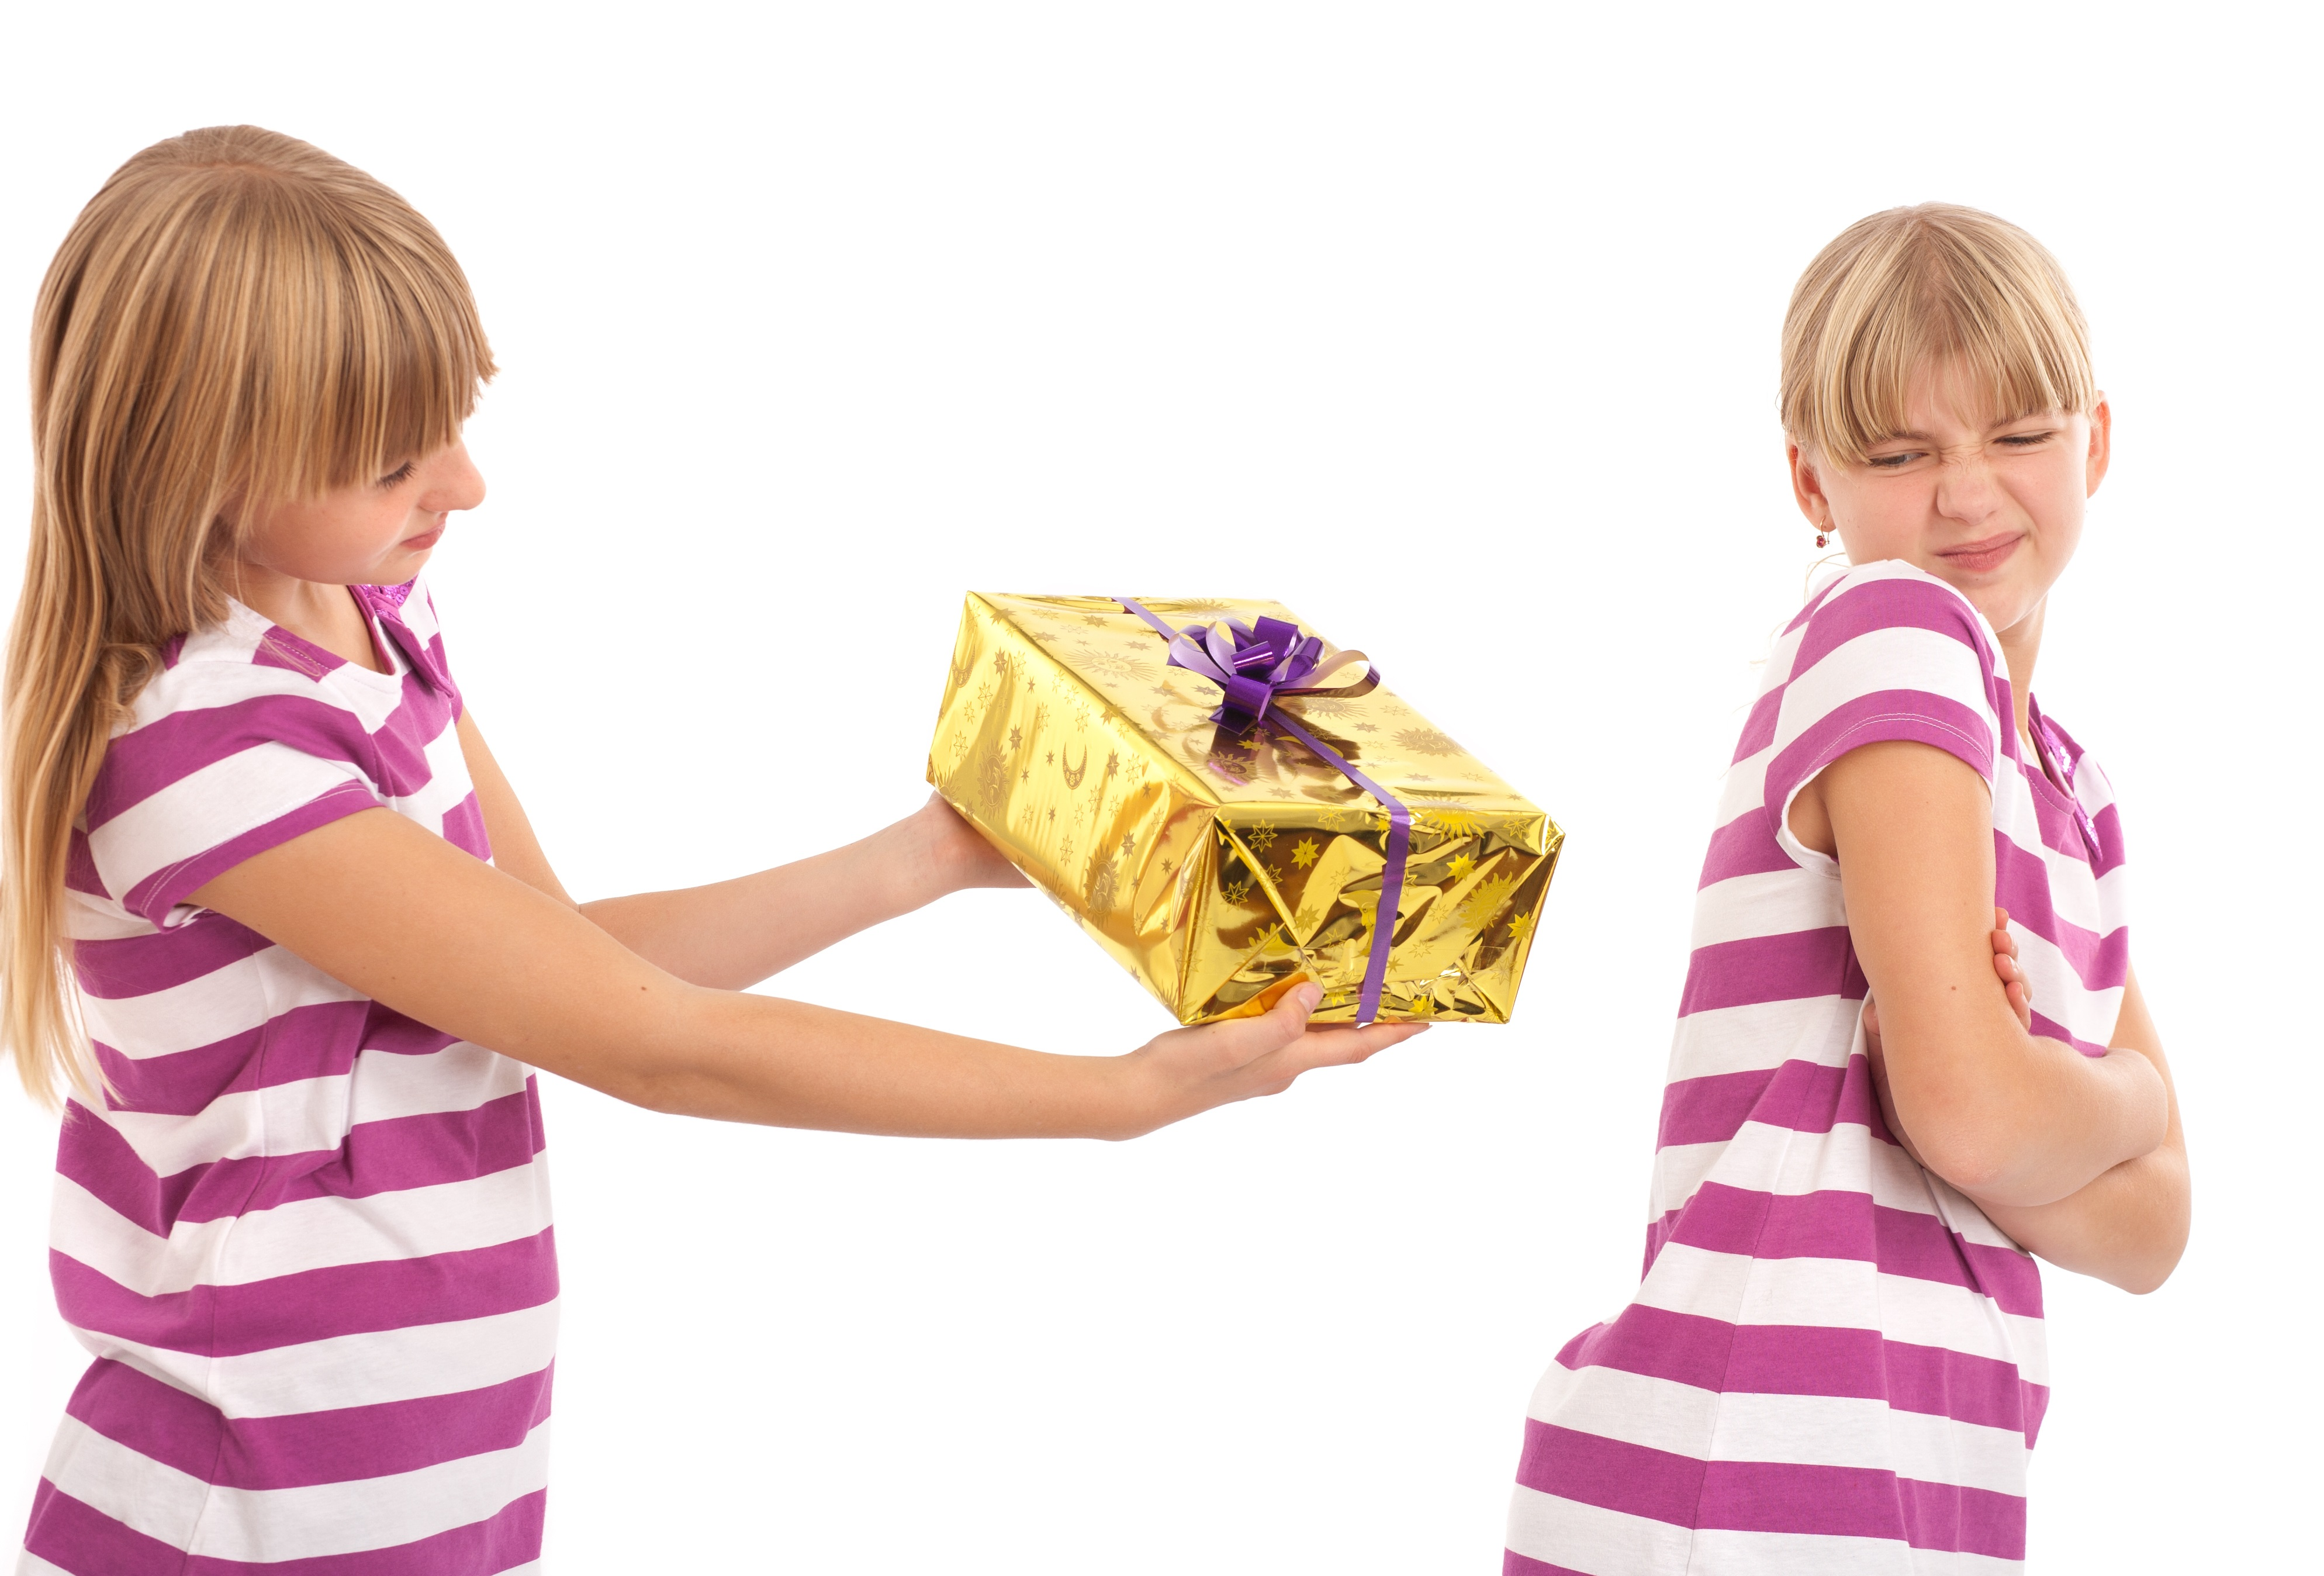 Girl not wanting gift